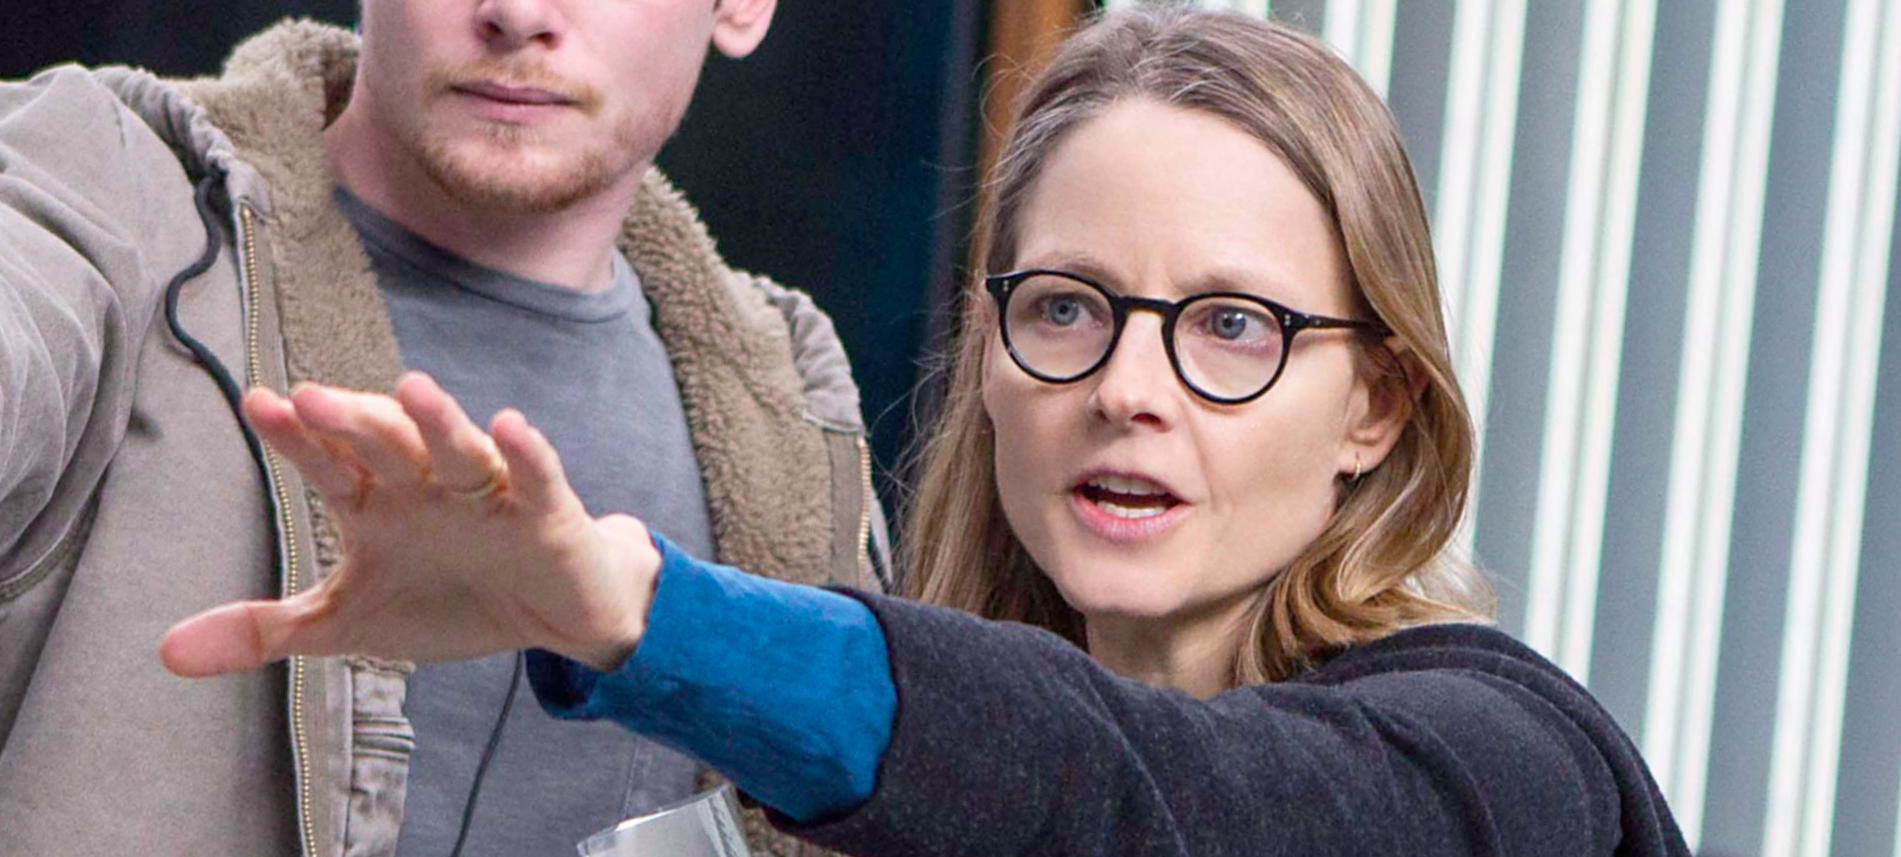 Jodie Foster nudes (74 photo), Sexy, Leaked, Twitter, braless 2019